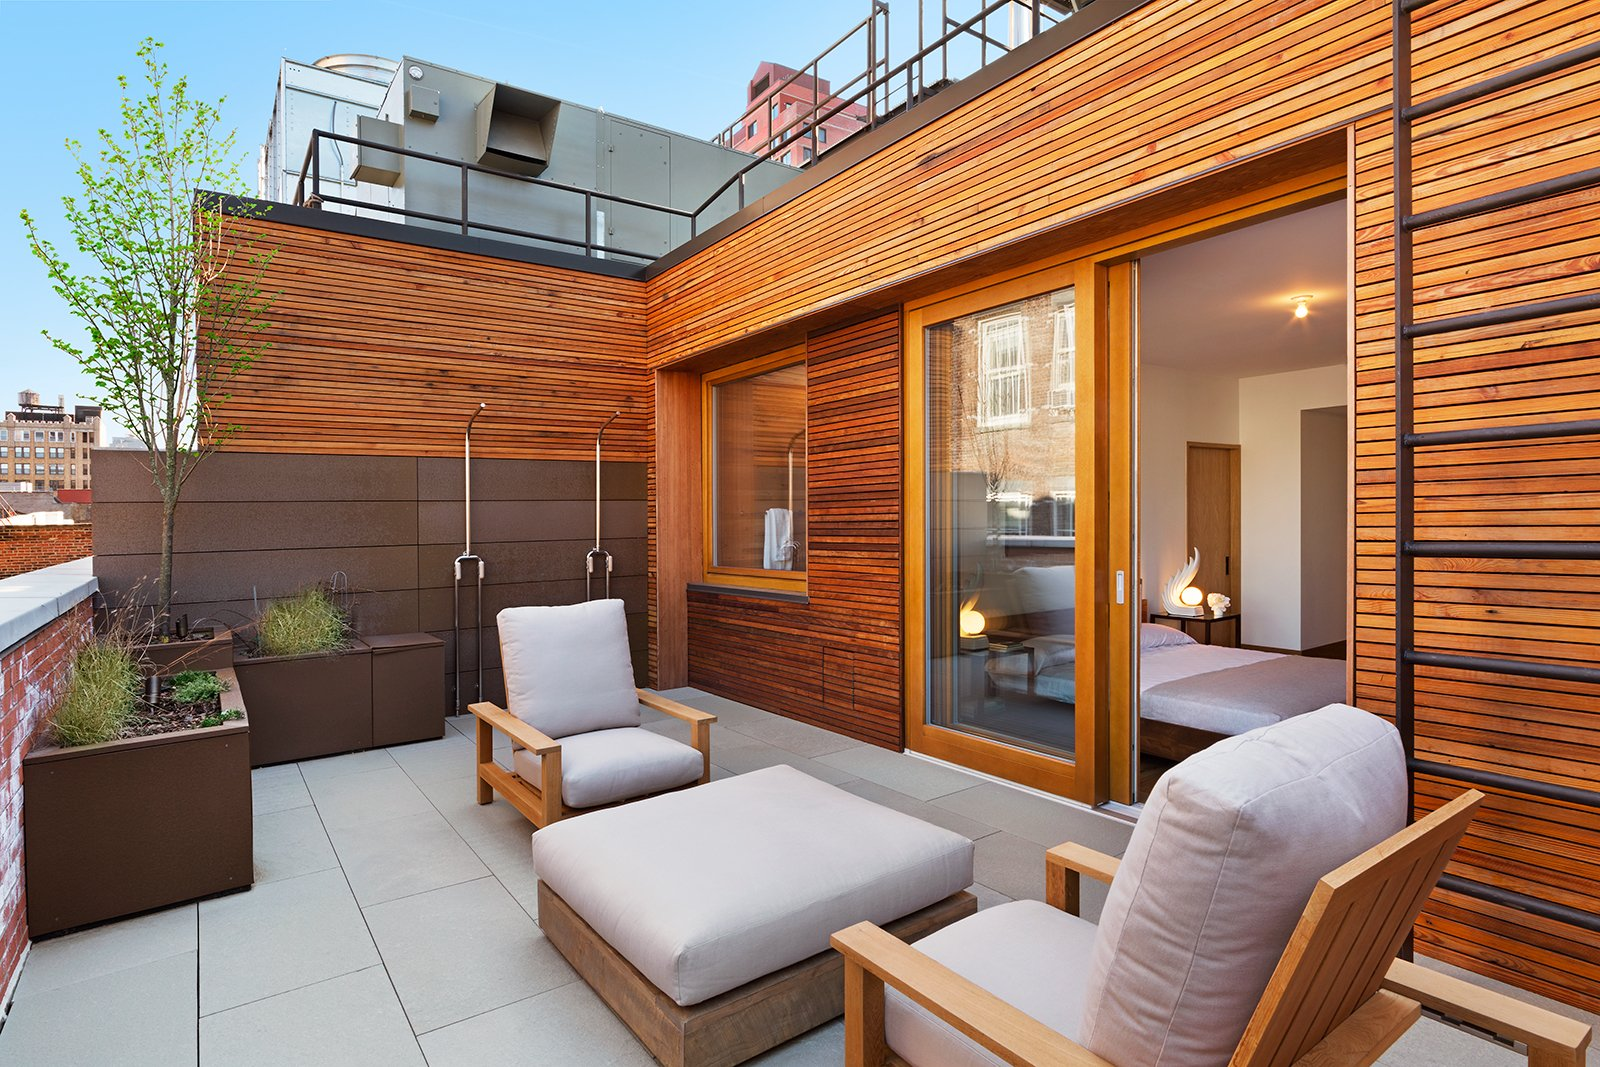 Outdoor Deck features Zola Lift & Slide Door offering outstanding thermal and acoustic performance while showcasing expansive views of downtown Manhattan.  An Historic TriBeCa Building Reborn